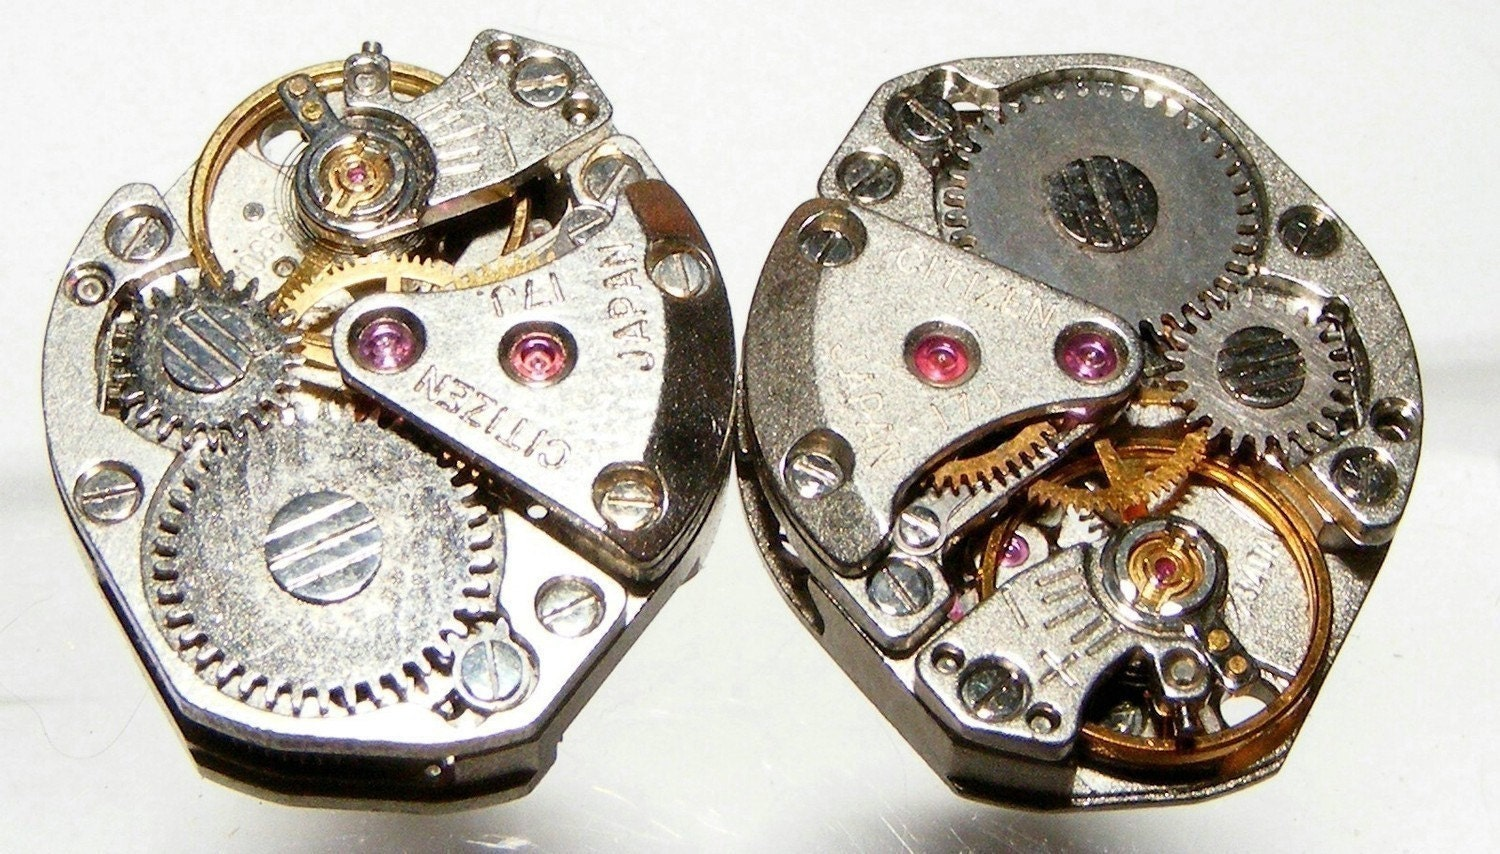 ONE Pair Of Identical Vintage Watch Movements, 17 Genuine Ruby Pieces In Each (Lg Bump) REDUCED